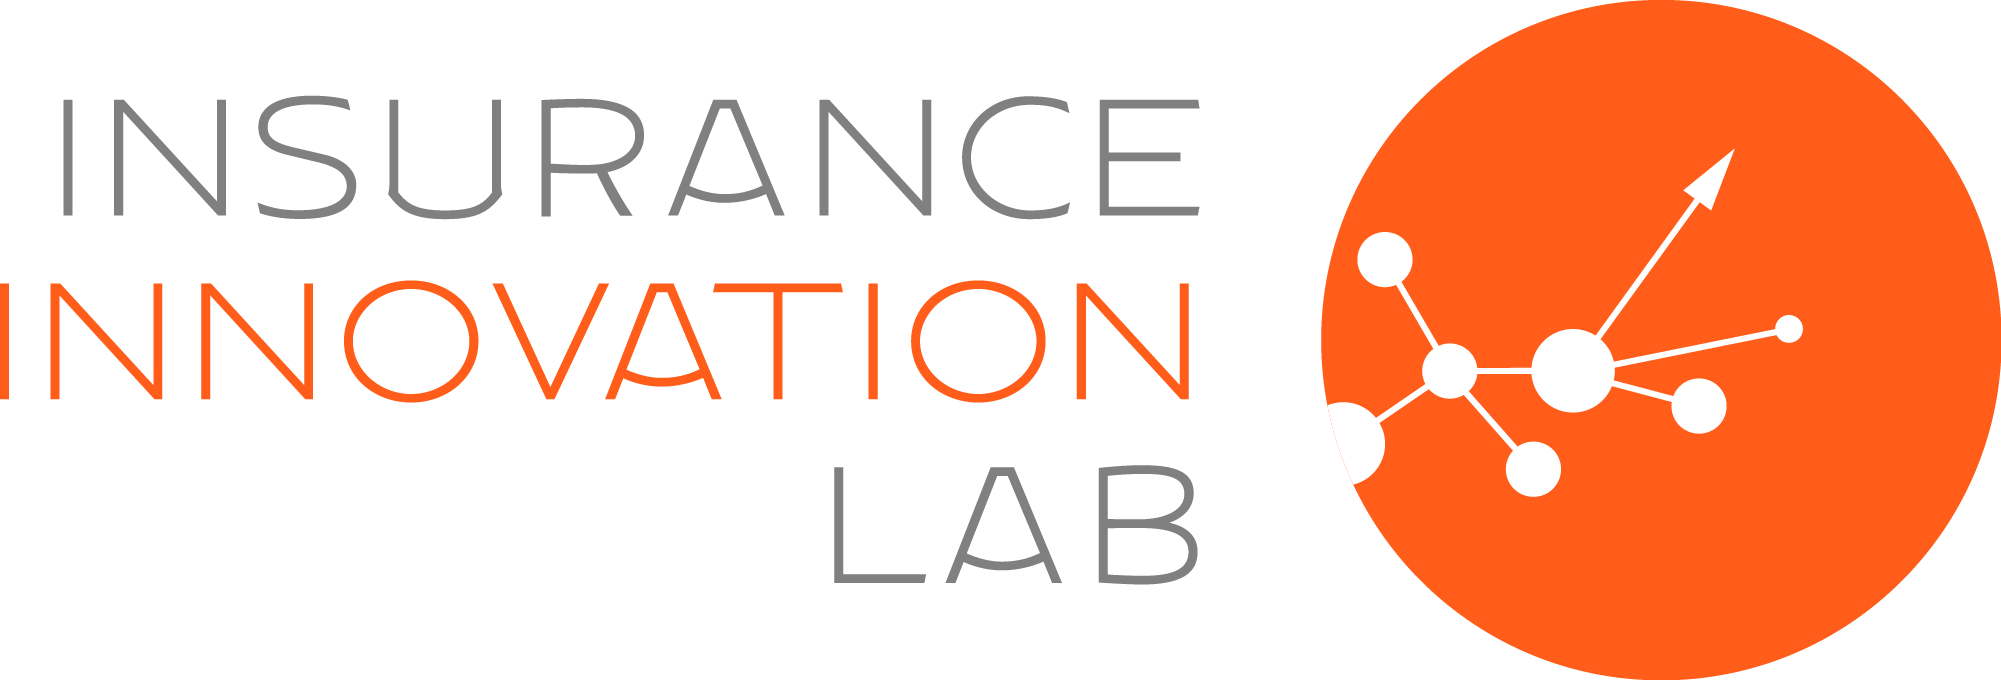 Insurance Innovation Lab